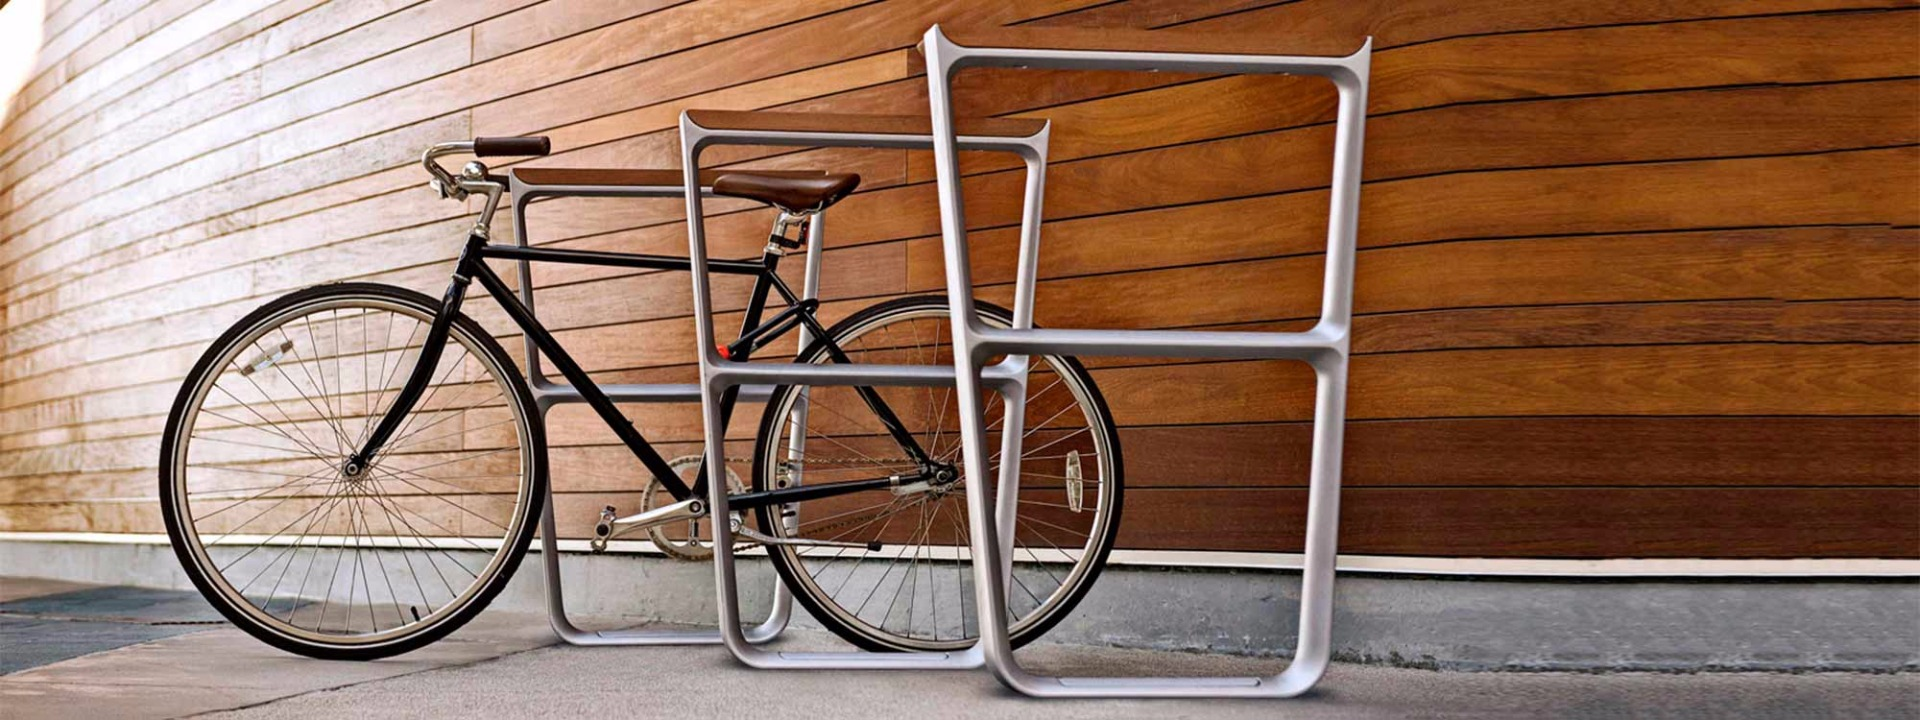 Multiplicity Cycle Stand Street Furniture Uk